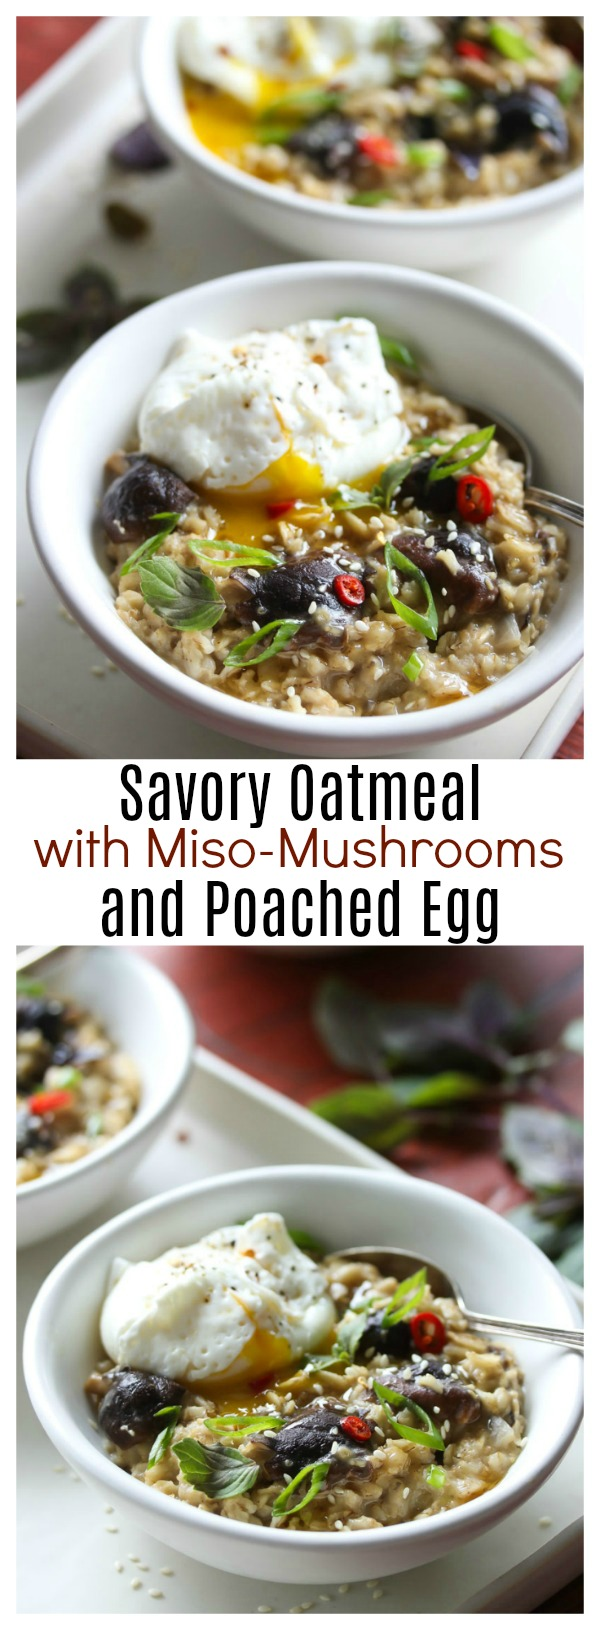 Savory Oatmeal with Miso-Mushrooms and Poached Egg | dishingouthealth.com